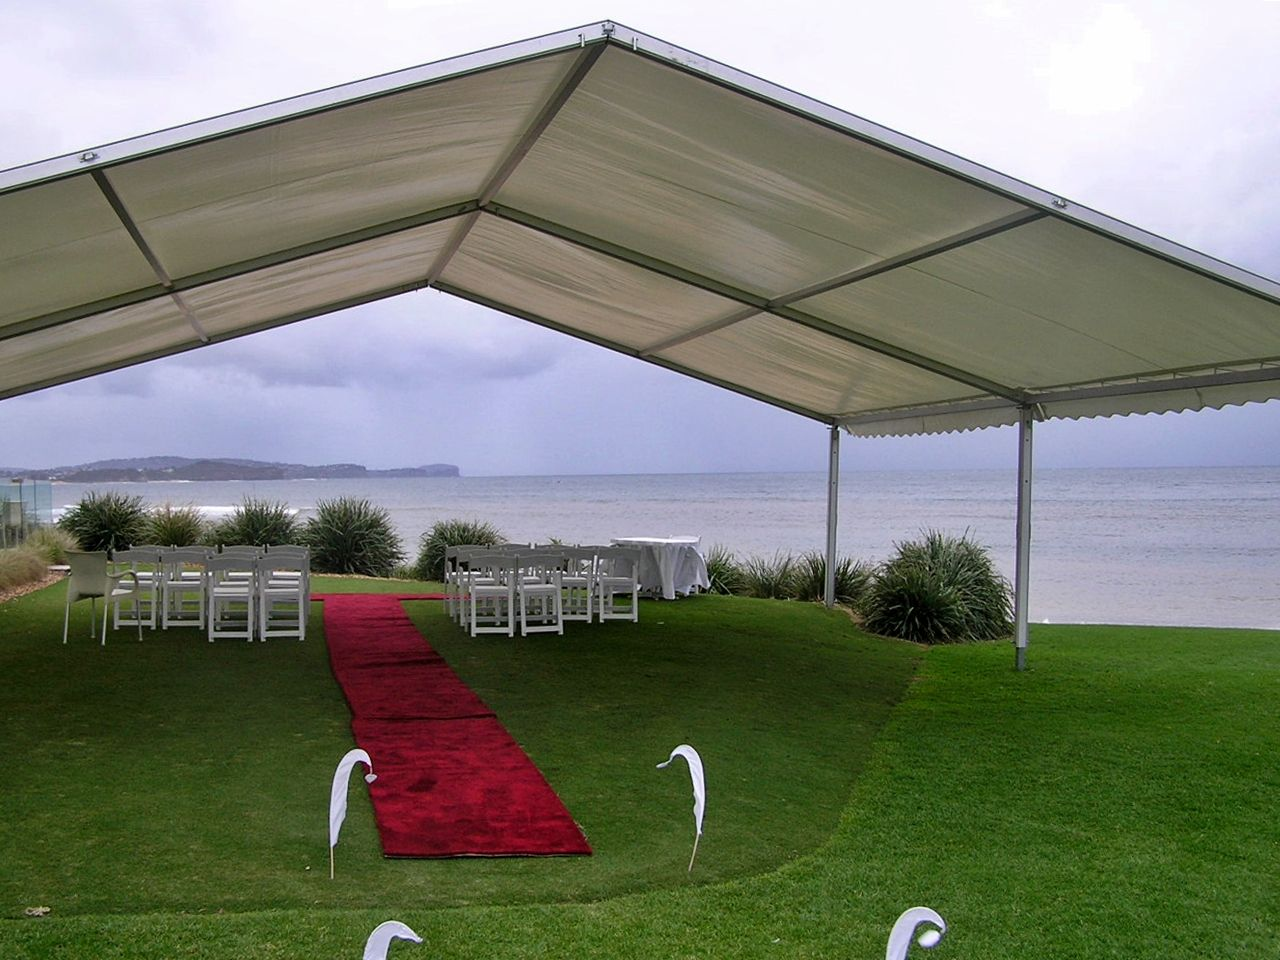 10m x 10m wedding ceremony marquee for hire in Sydney, Hunter Valley, quick set up.